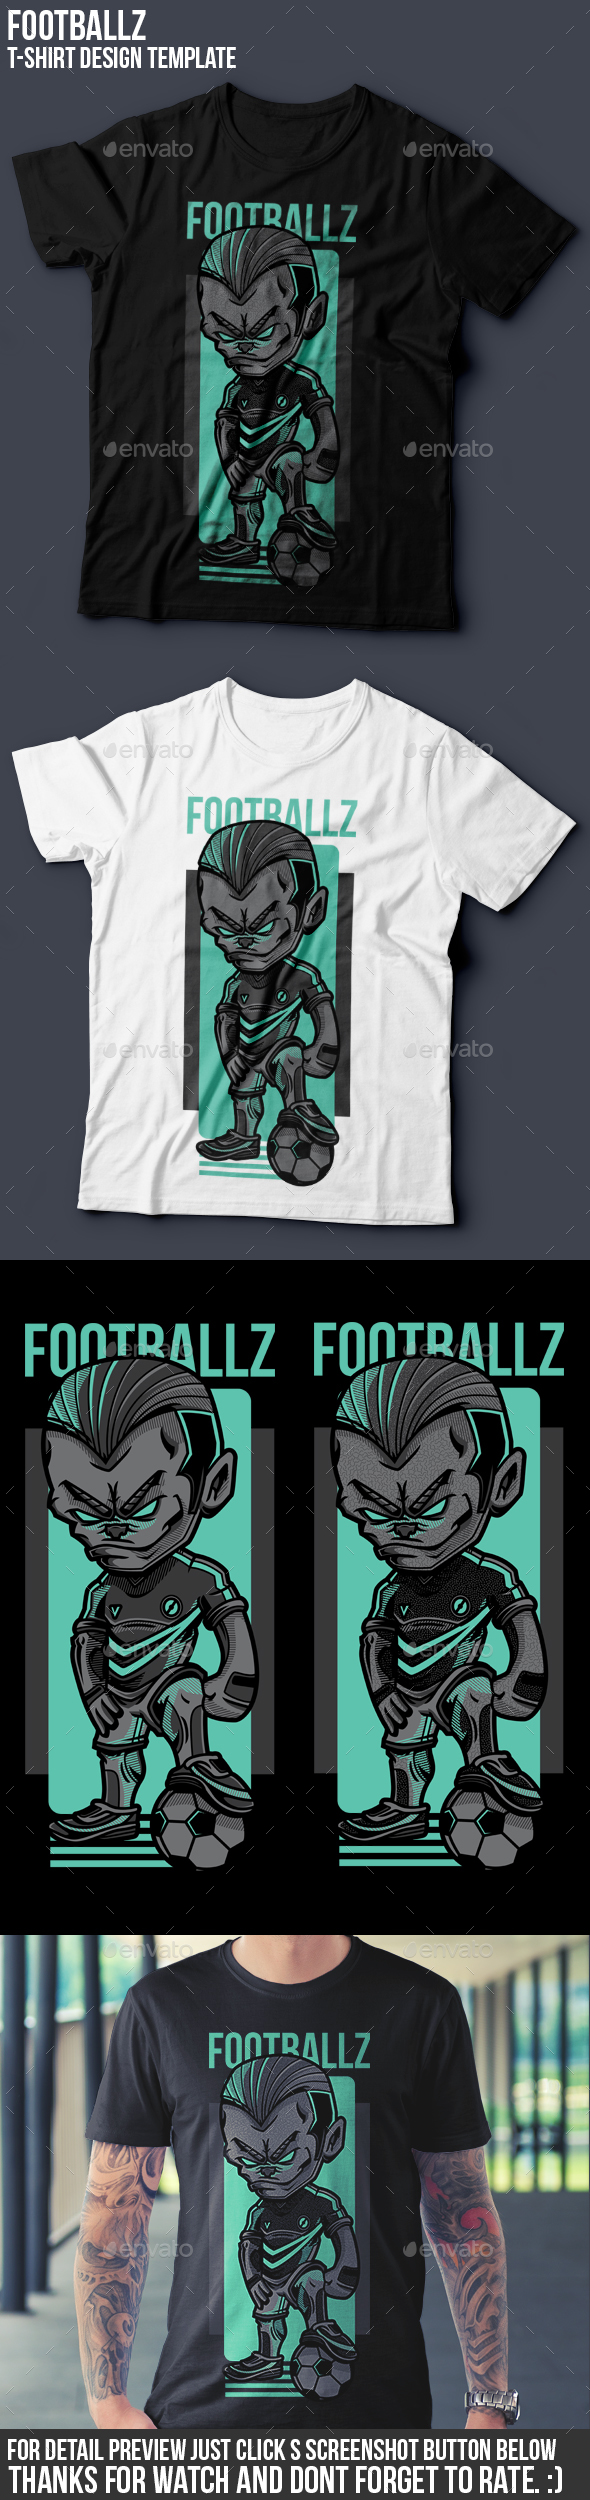 Footballz T-Shirt Design - Sports & Teams T-Shirts